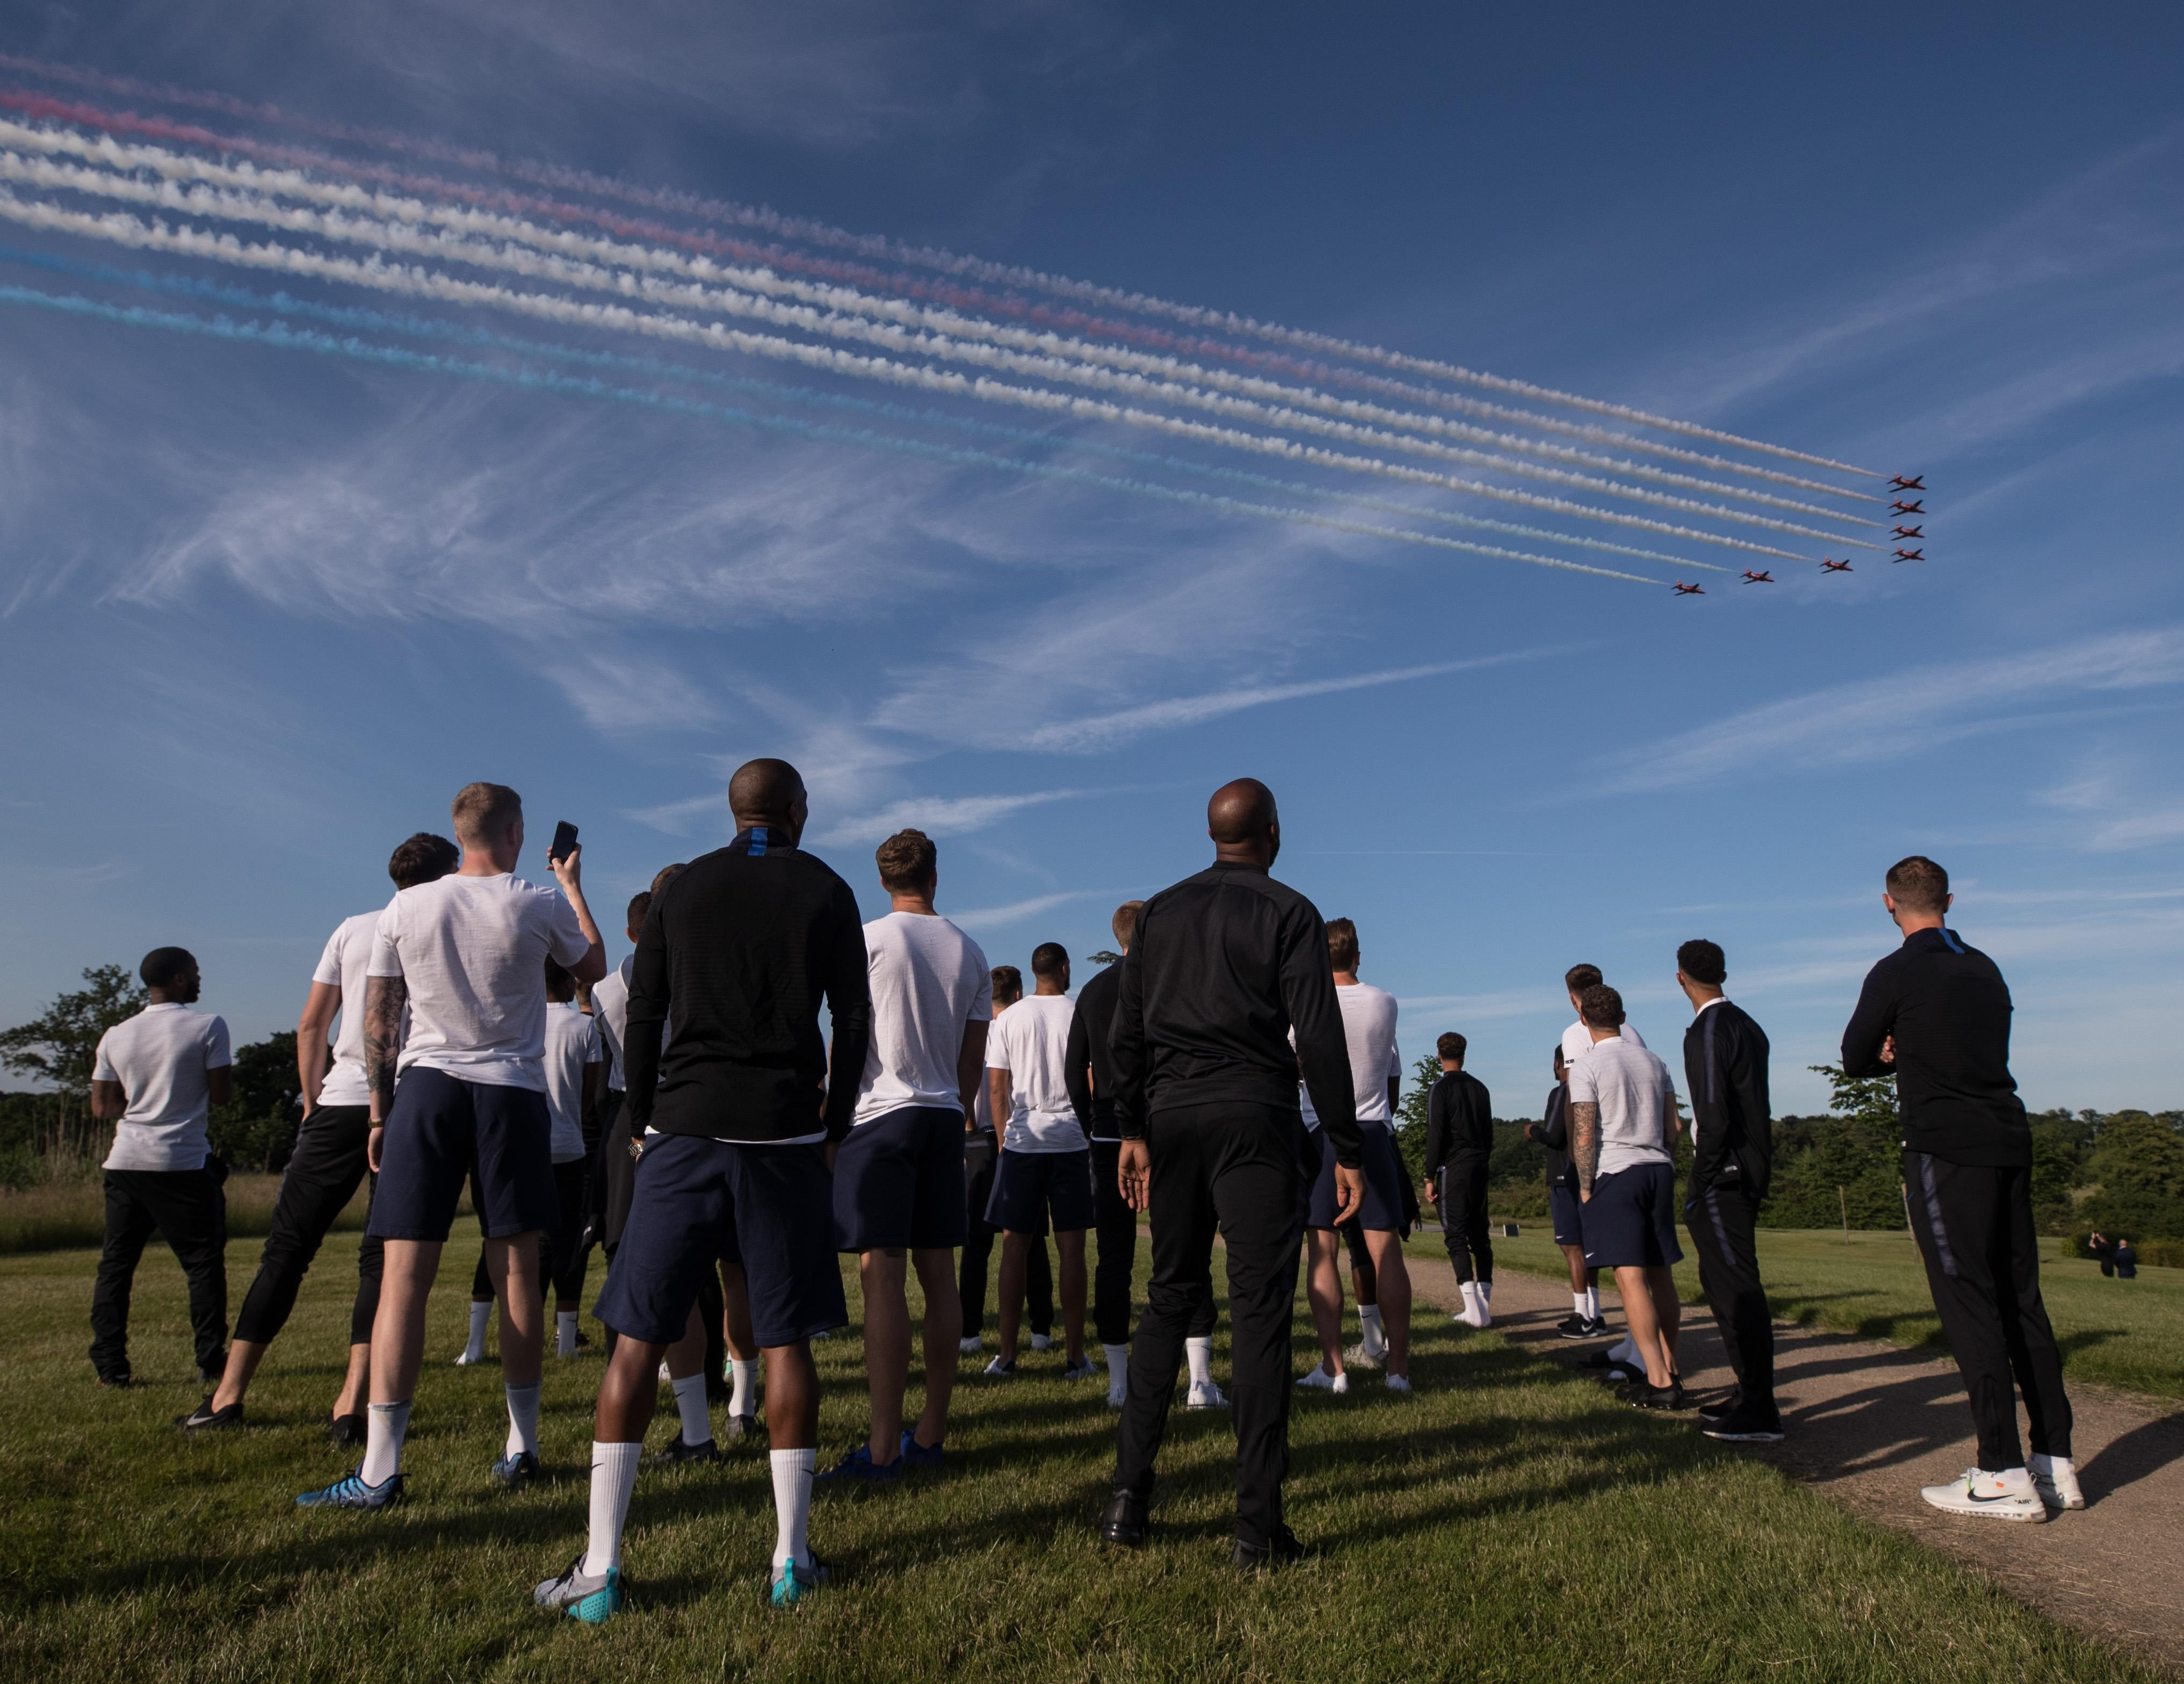 The players stood in awe as the planes put on a show above them